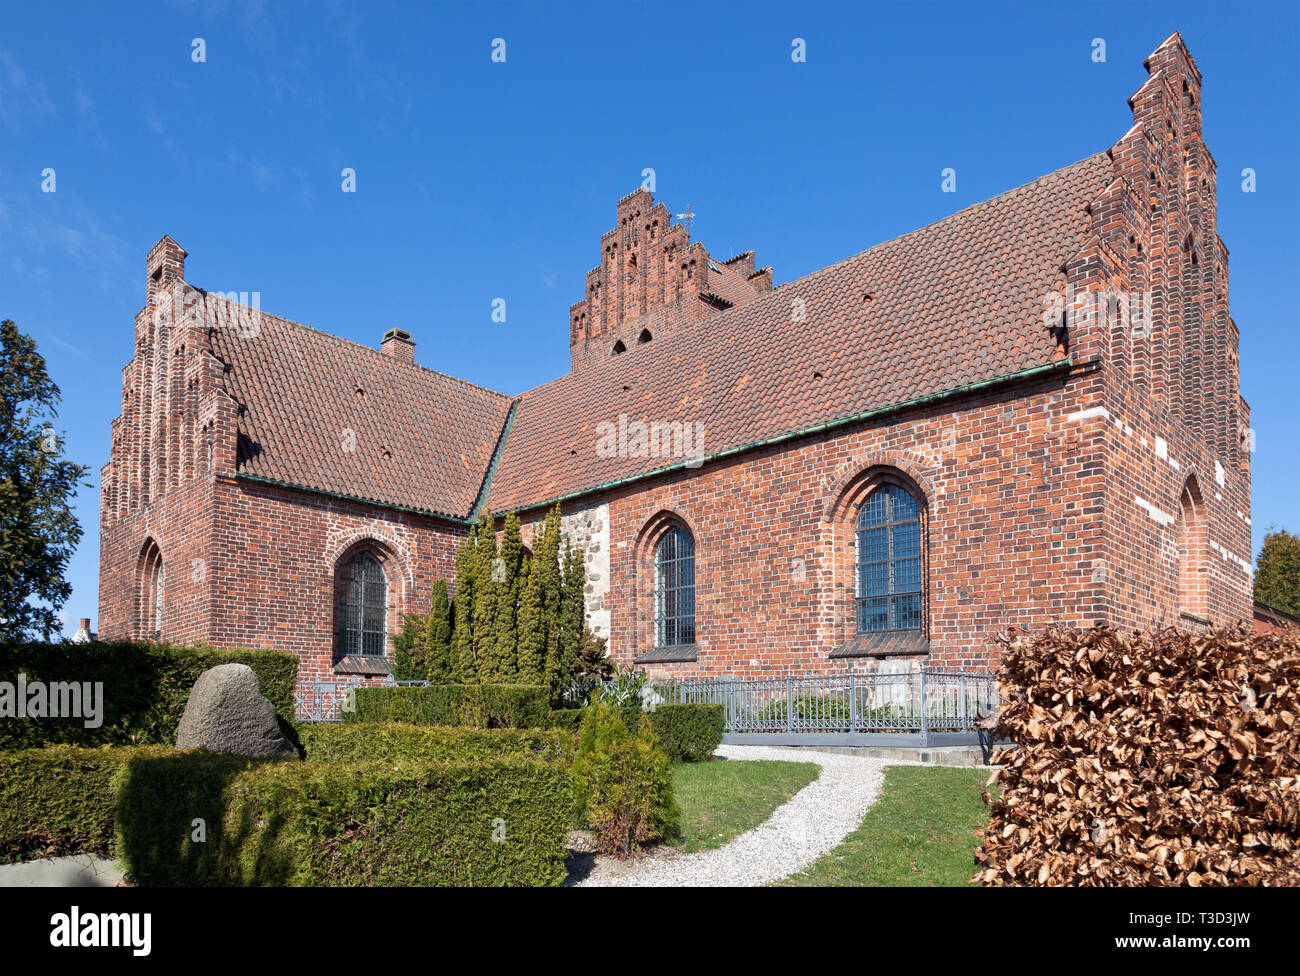 Lyngby Church in Romanesque style originally from mid 12th century. Lengthened in  Late Gothic era. Kongens Lyngby, a northern suburb to Copenhagen. - Stock Image